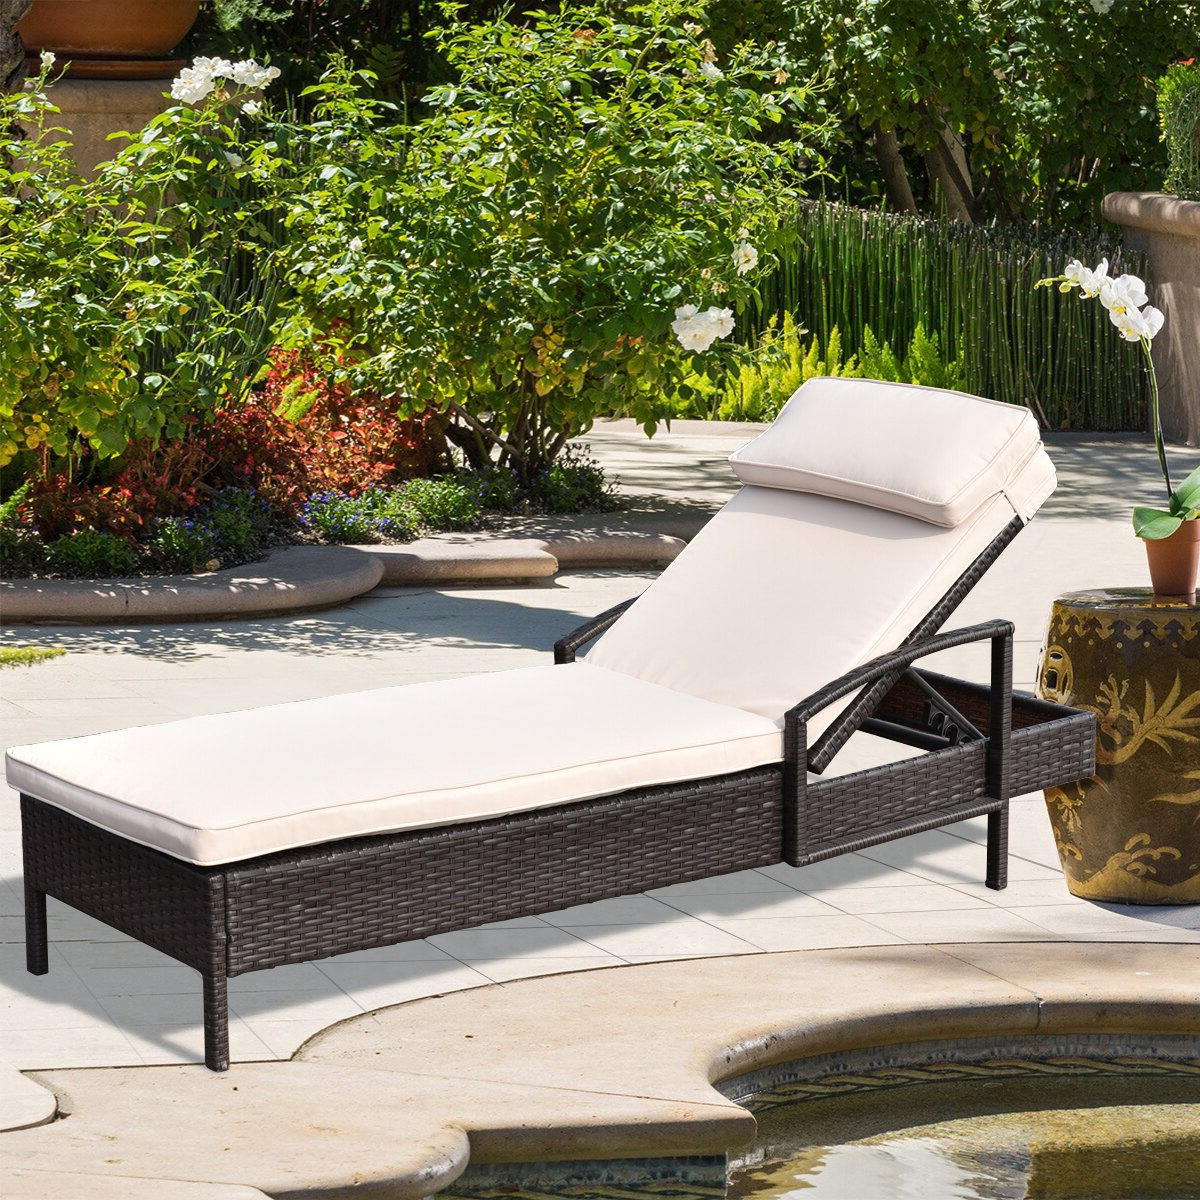 Rakuten Pertaining To Well Known All Weather Rattan Wicker Chaise Lounges (View 24 of 25)